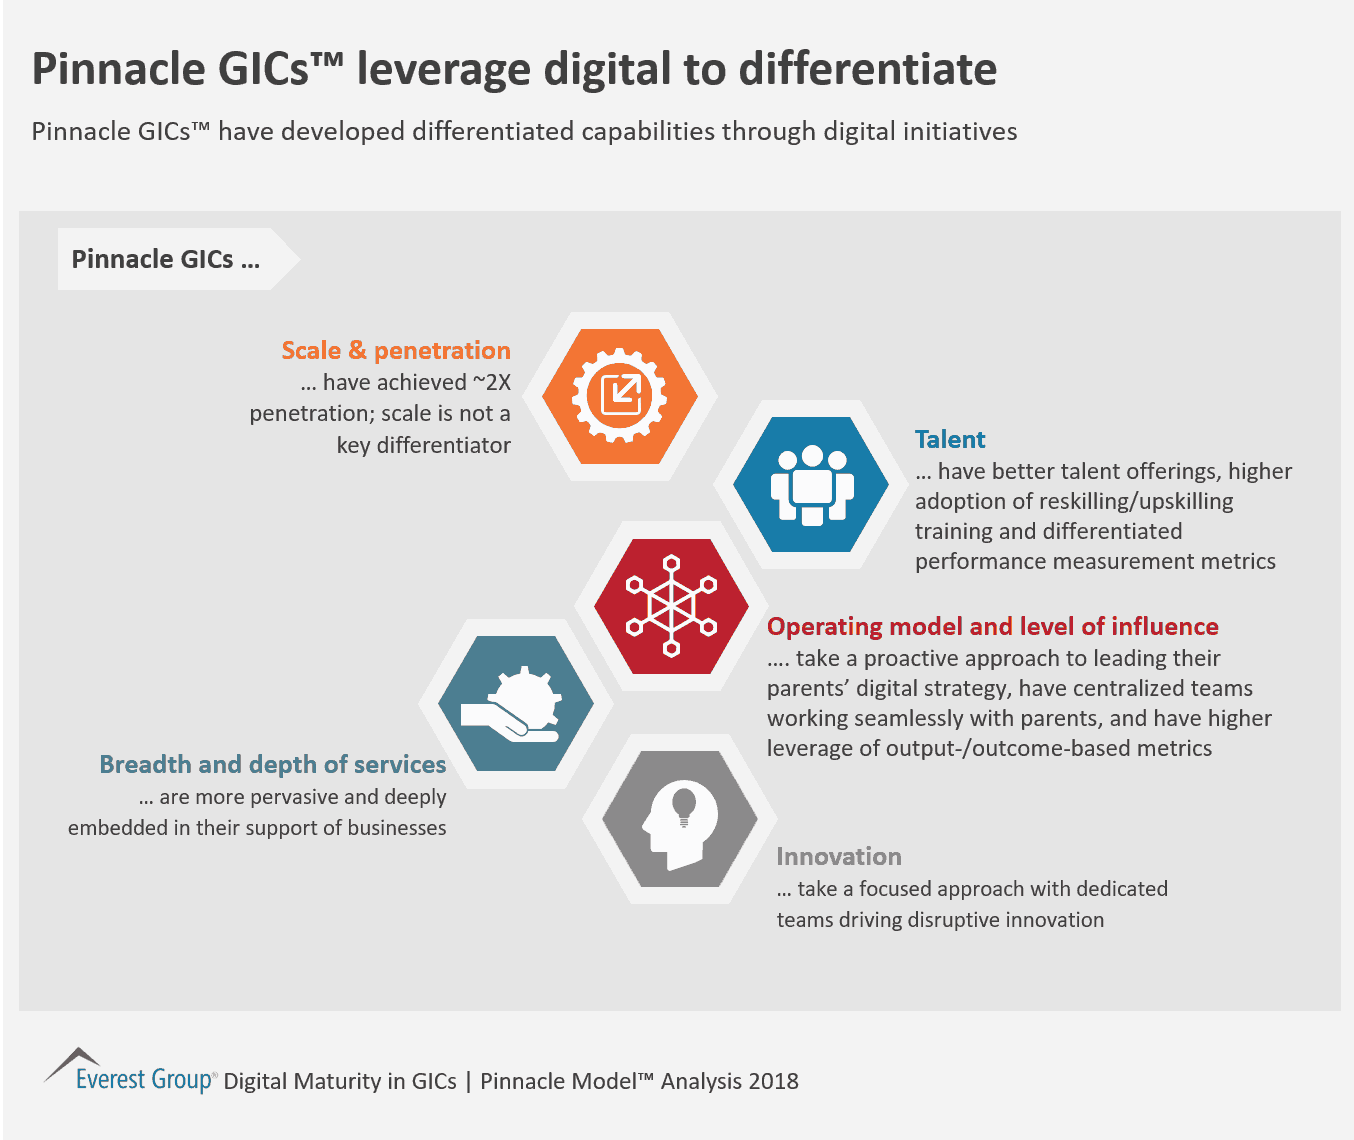 Pinnacle GICs™ leverage digital to differentiate